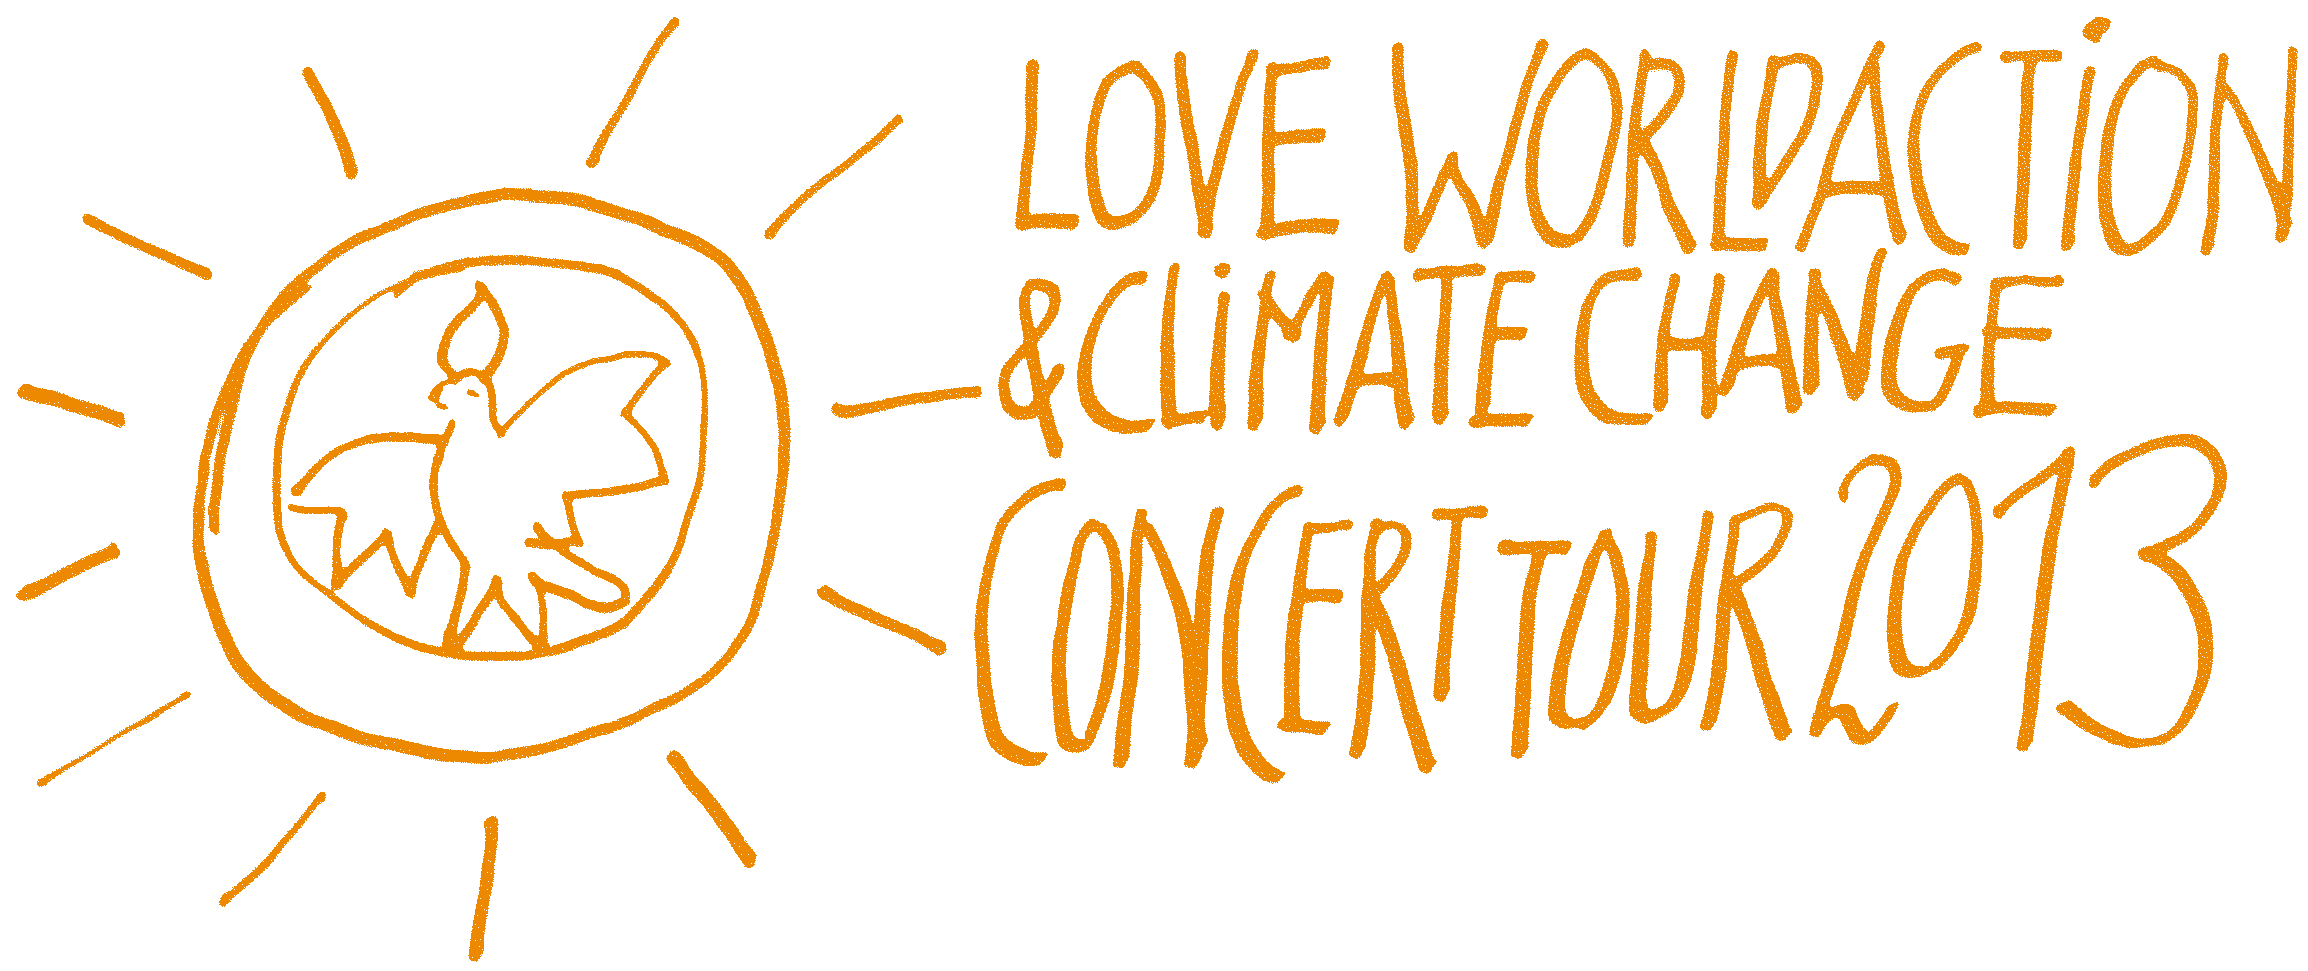 Love World Action & Climate Change Concert Tour 2013